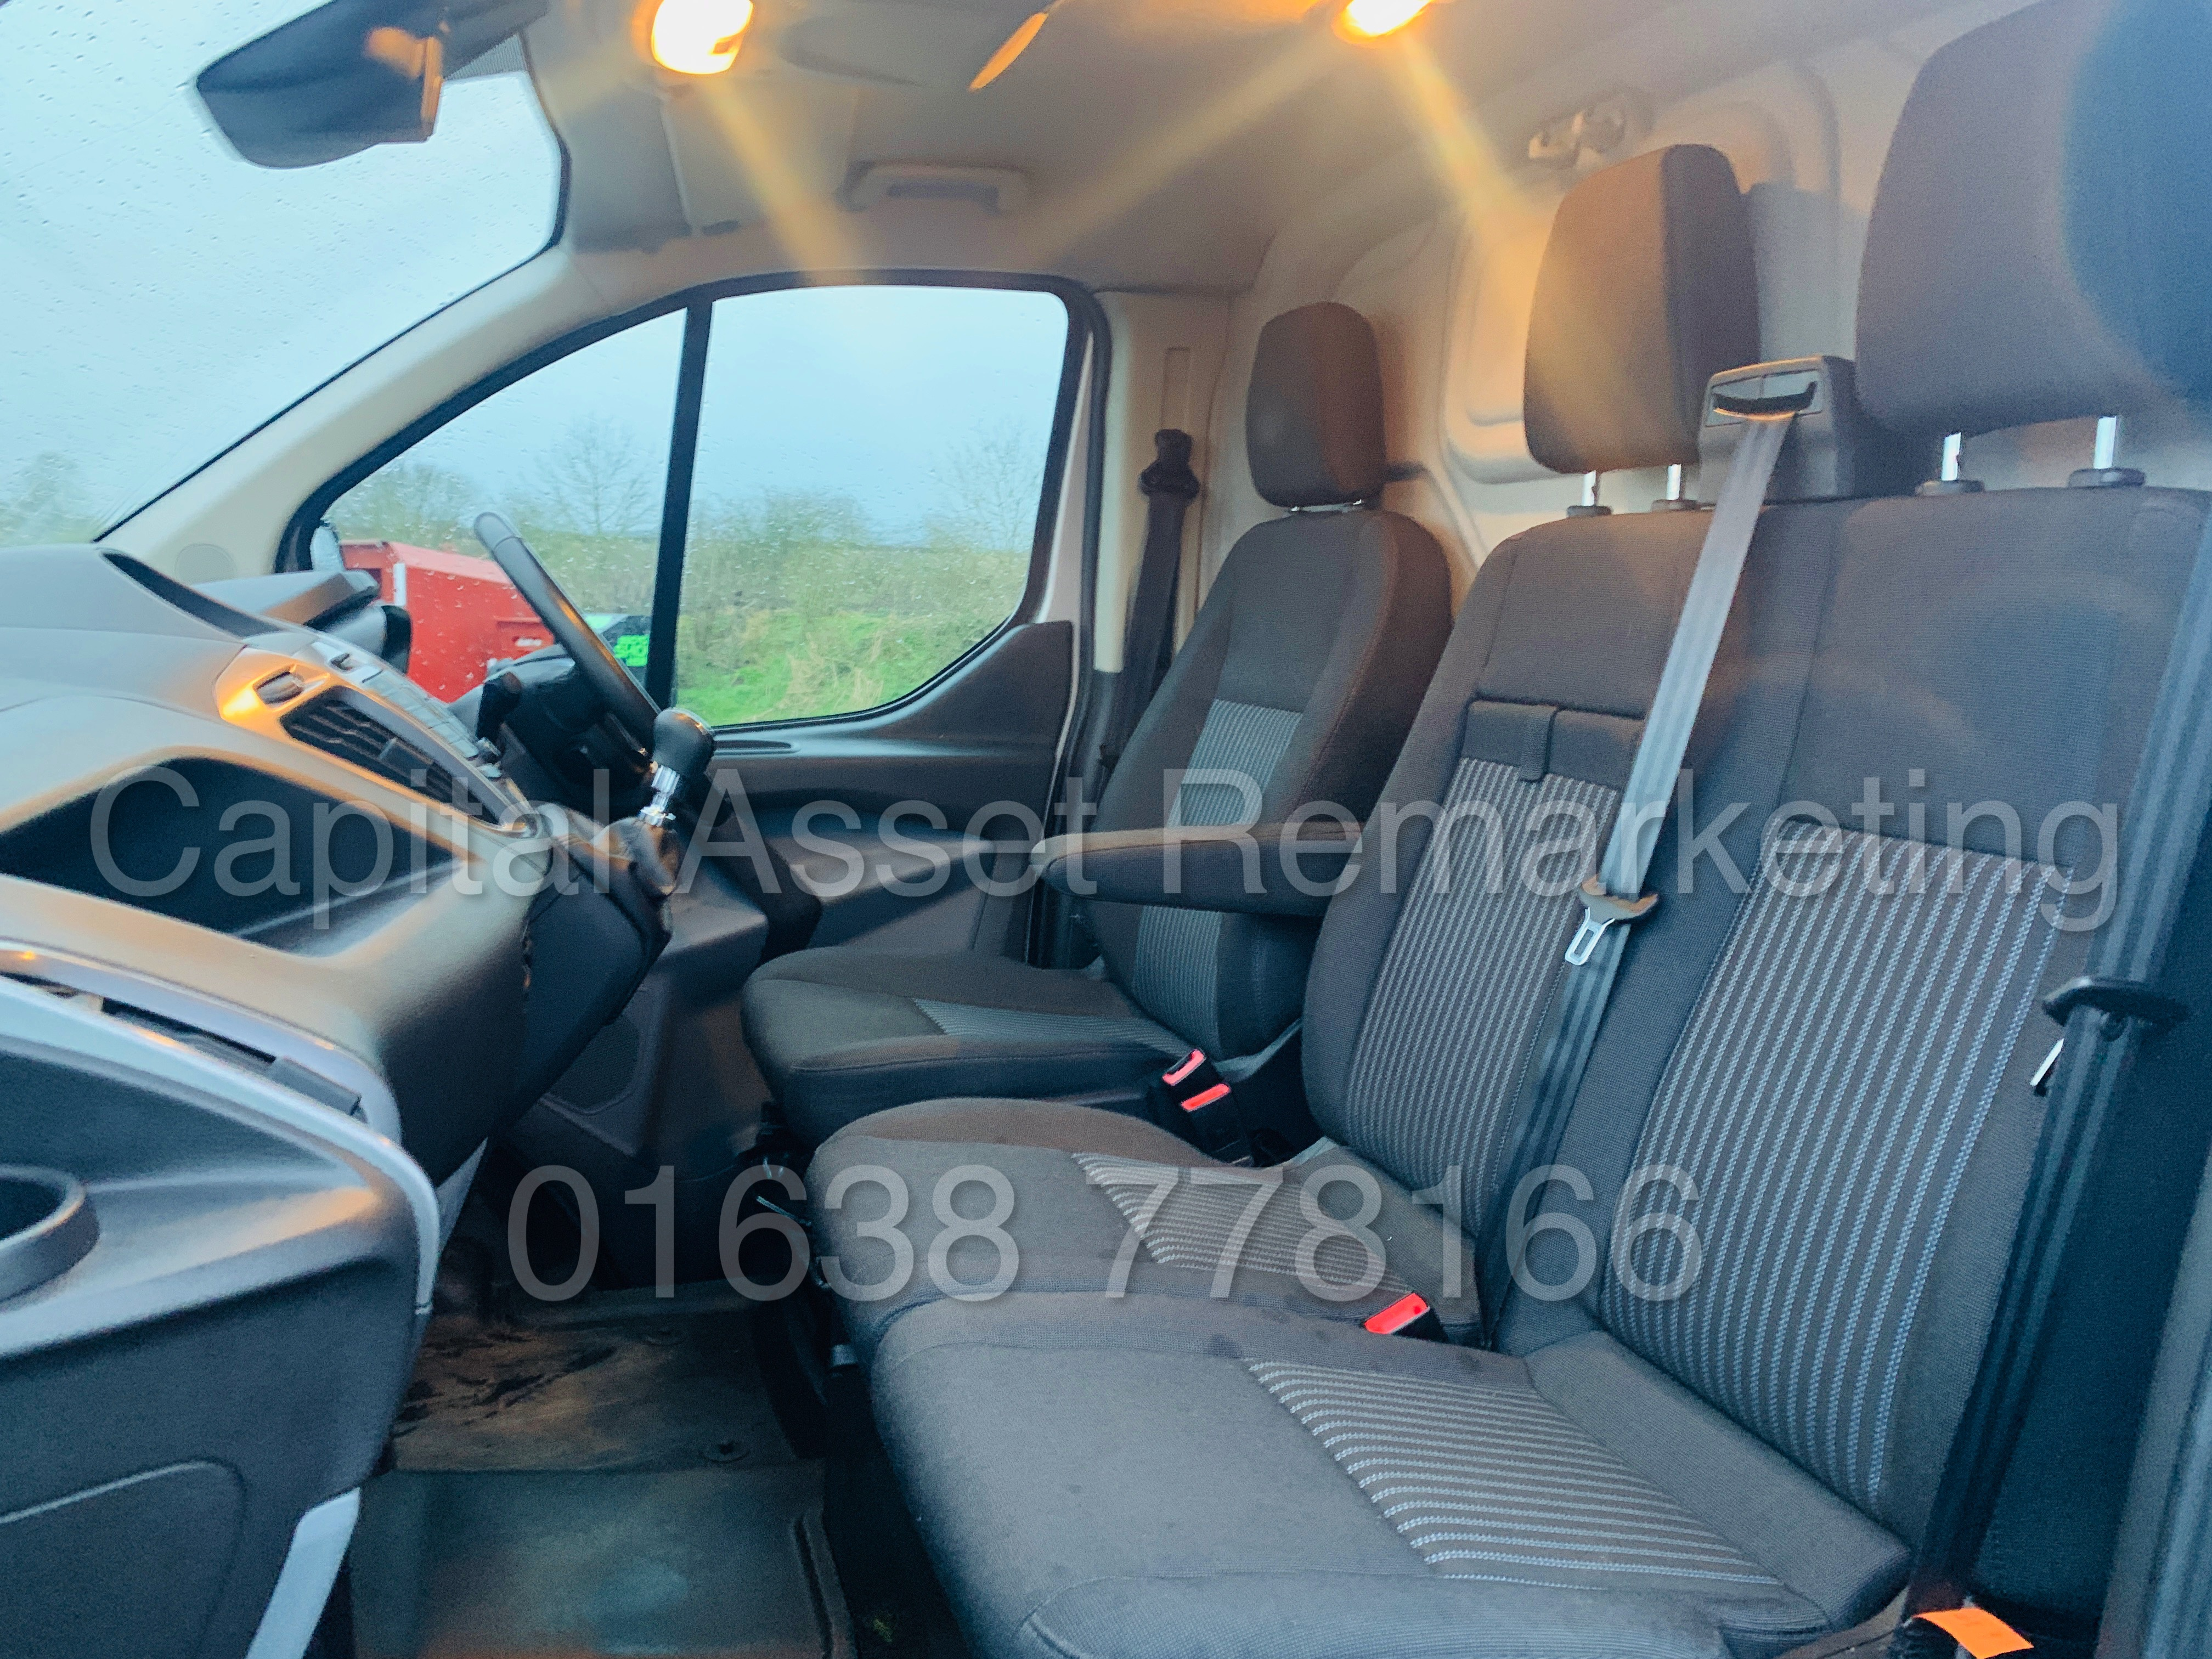 (On Sale) FORD TRANSIT *TREND* 290 SWB (2017 - EURO 6 / AD-BLUE) '2.0 TDCI - 130 BHP - 6 SPEED' - Image 19 of 41